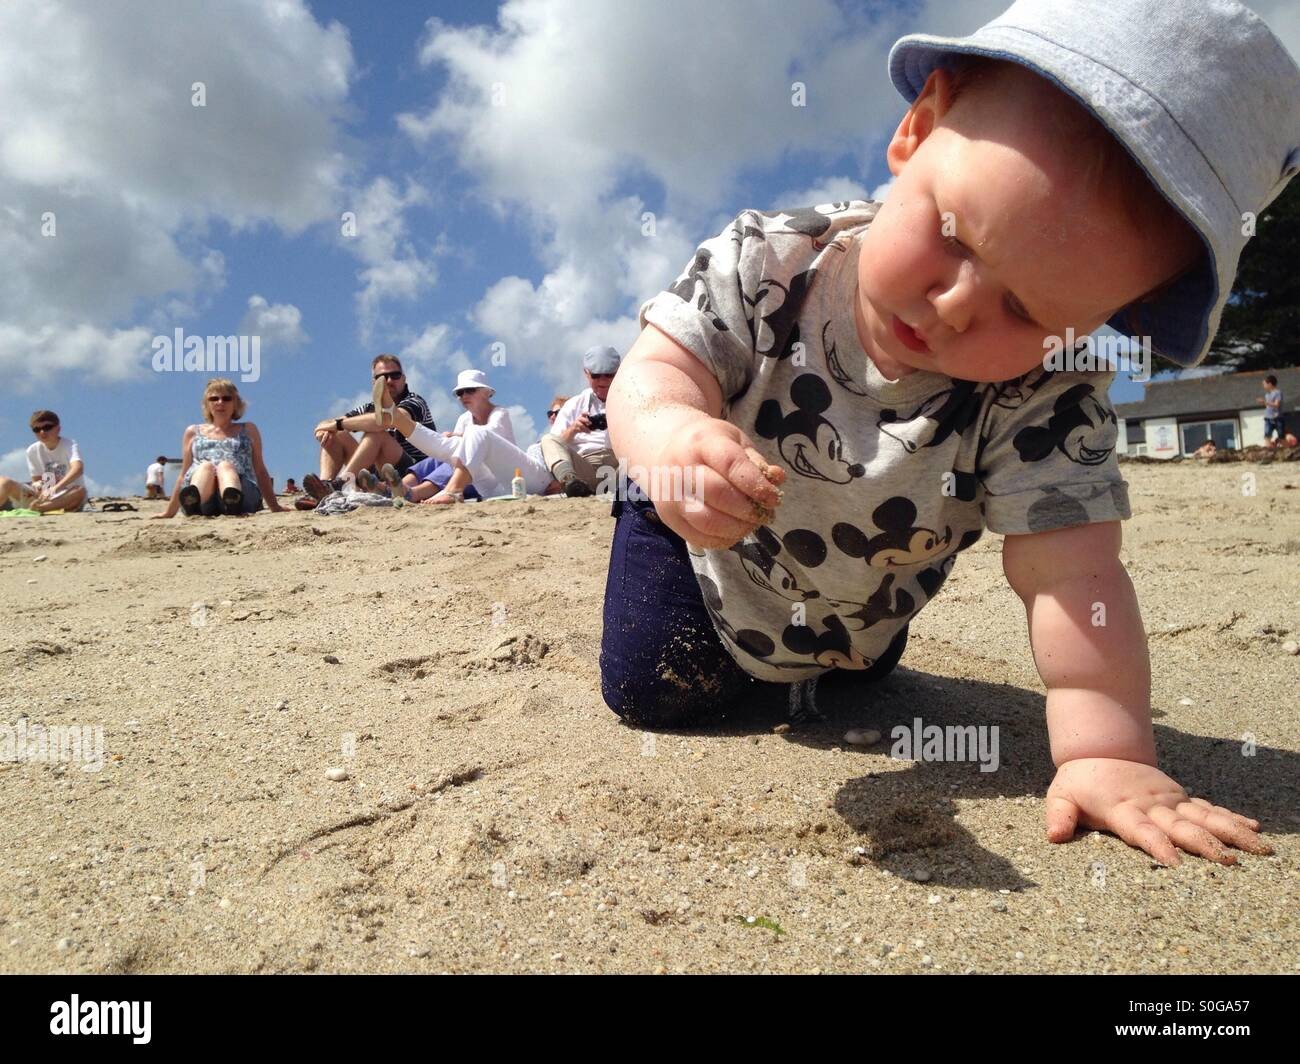 Studying sand with family watching - Stock Image